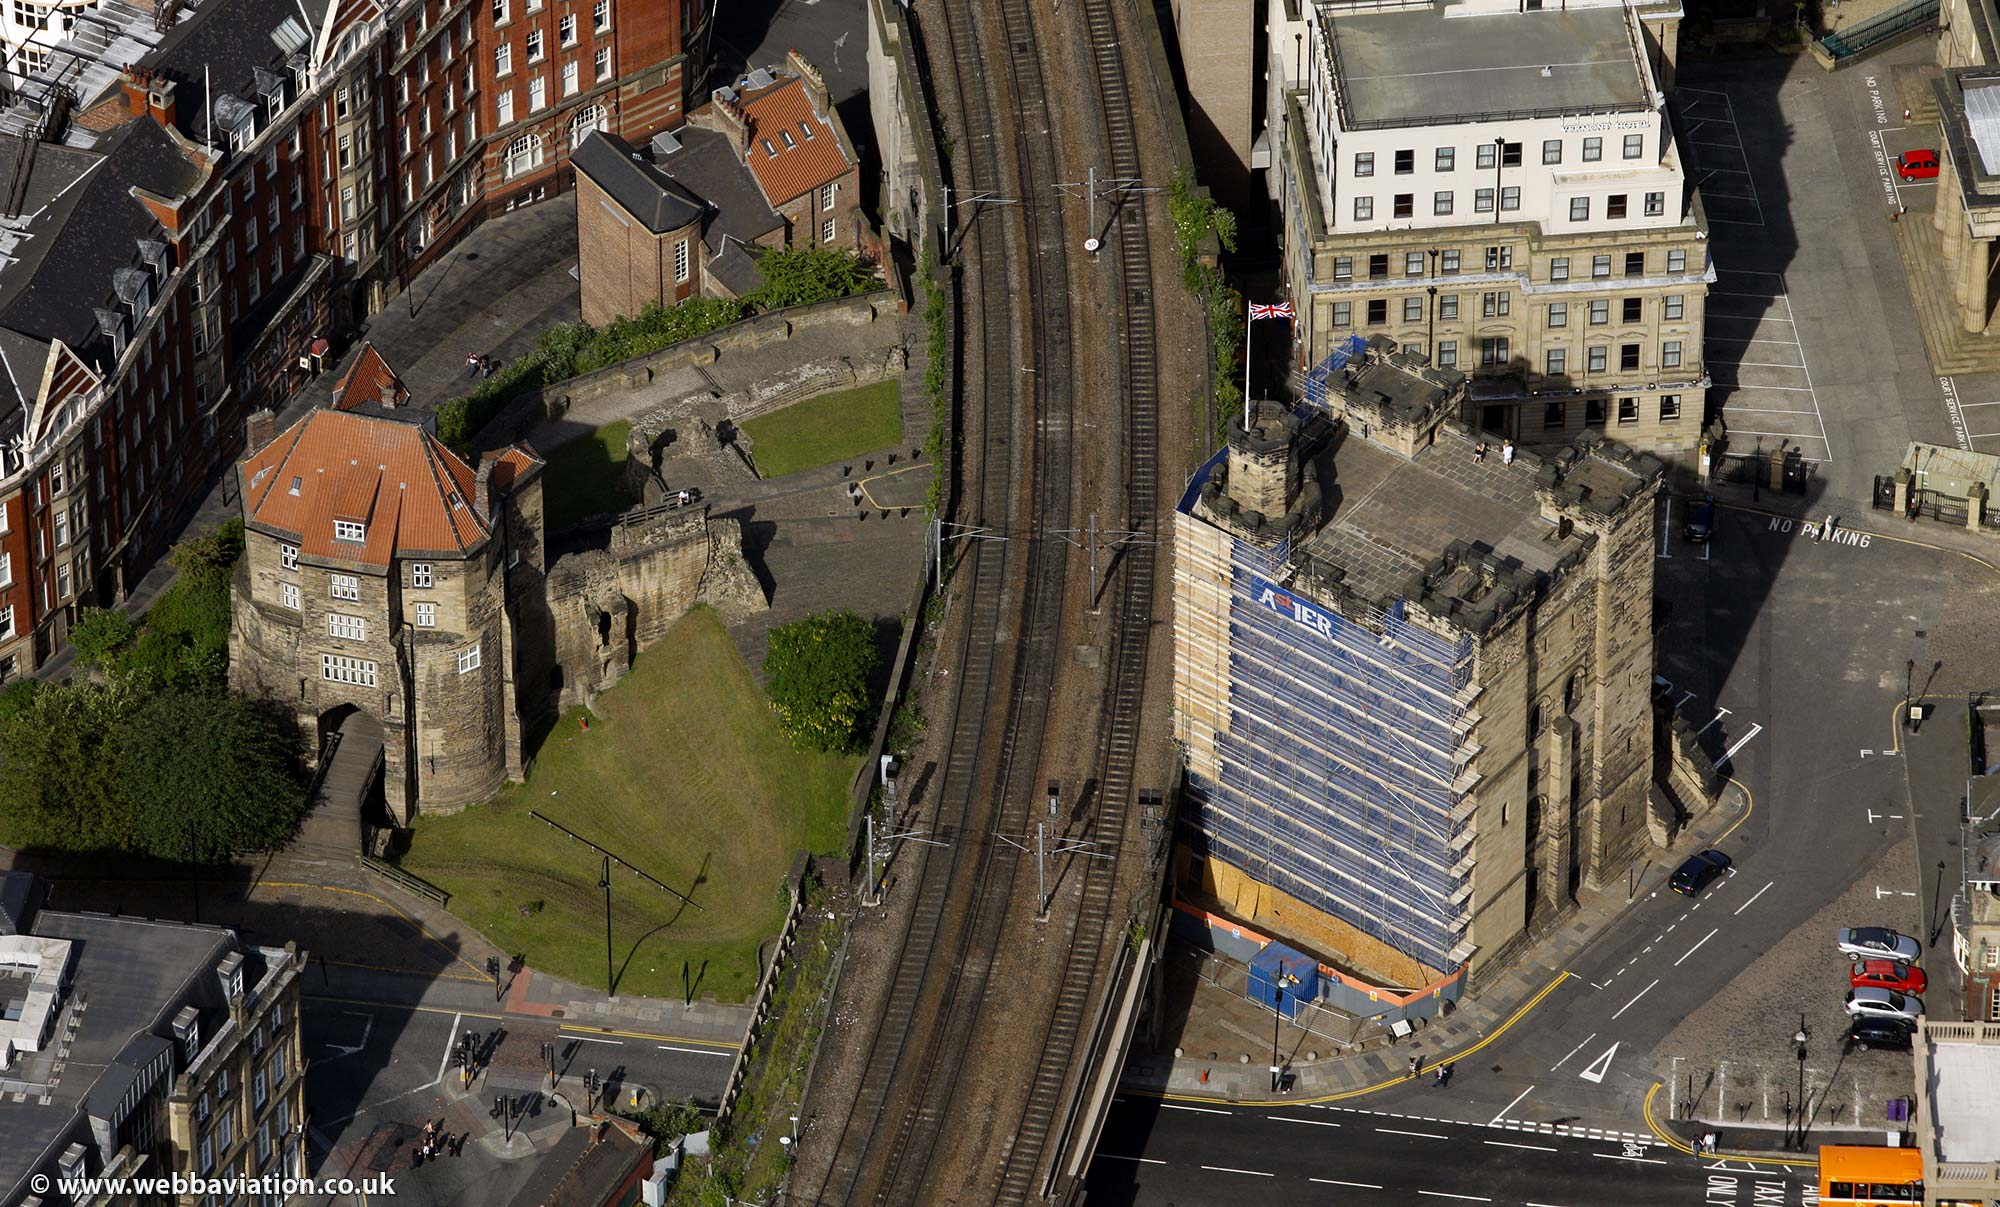 Newcastle upon Tyne Tyne and Wear aerial photograph